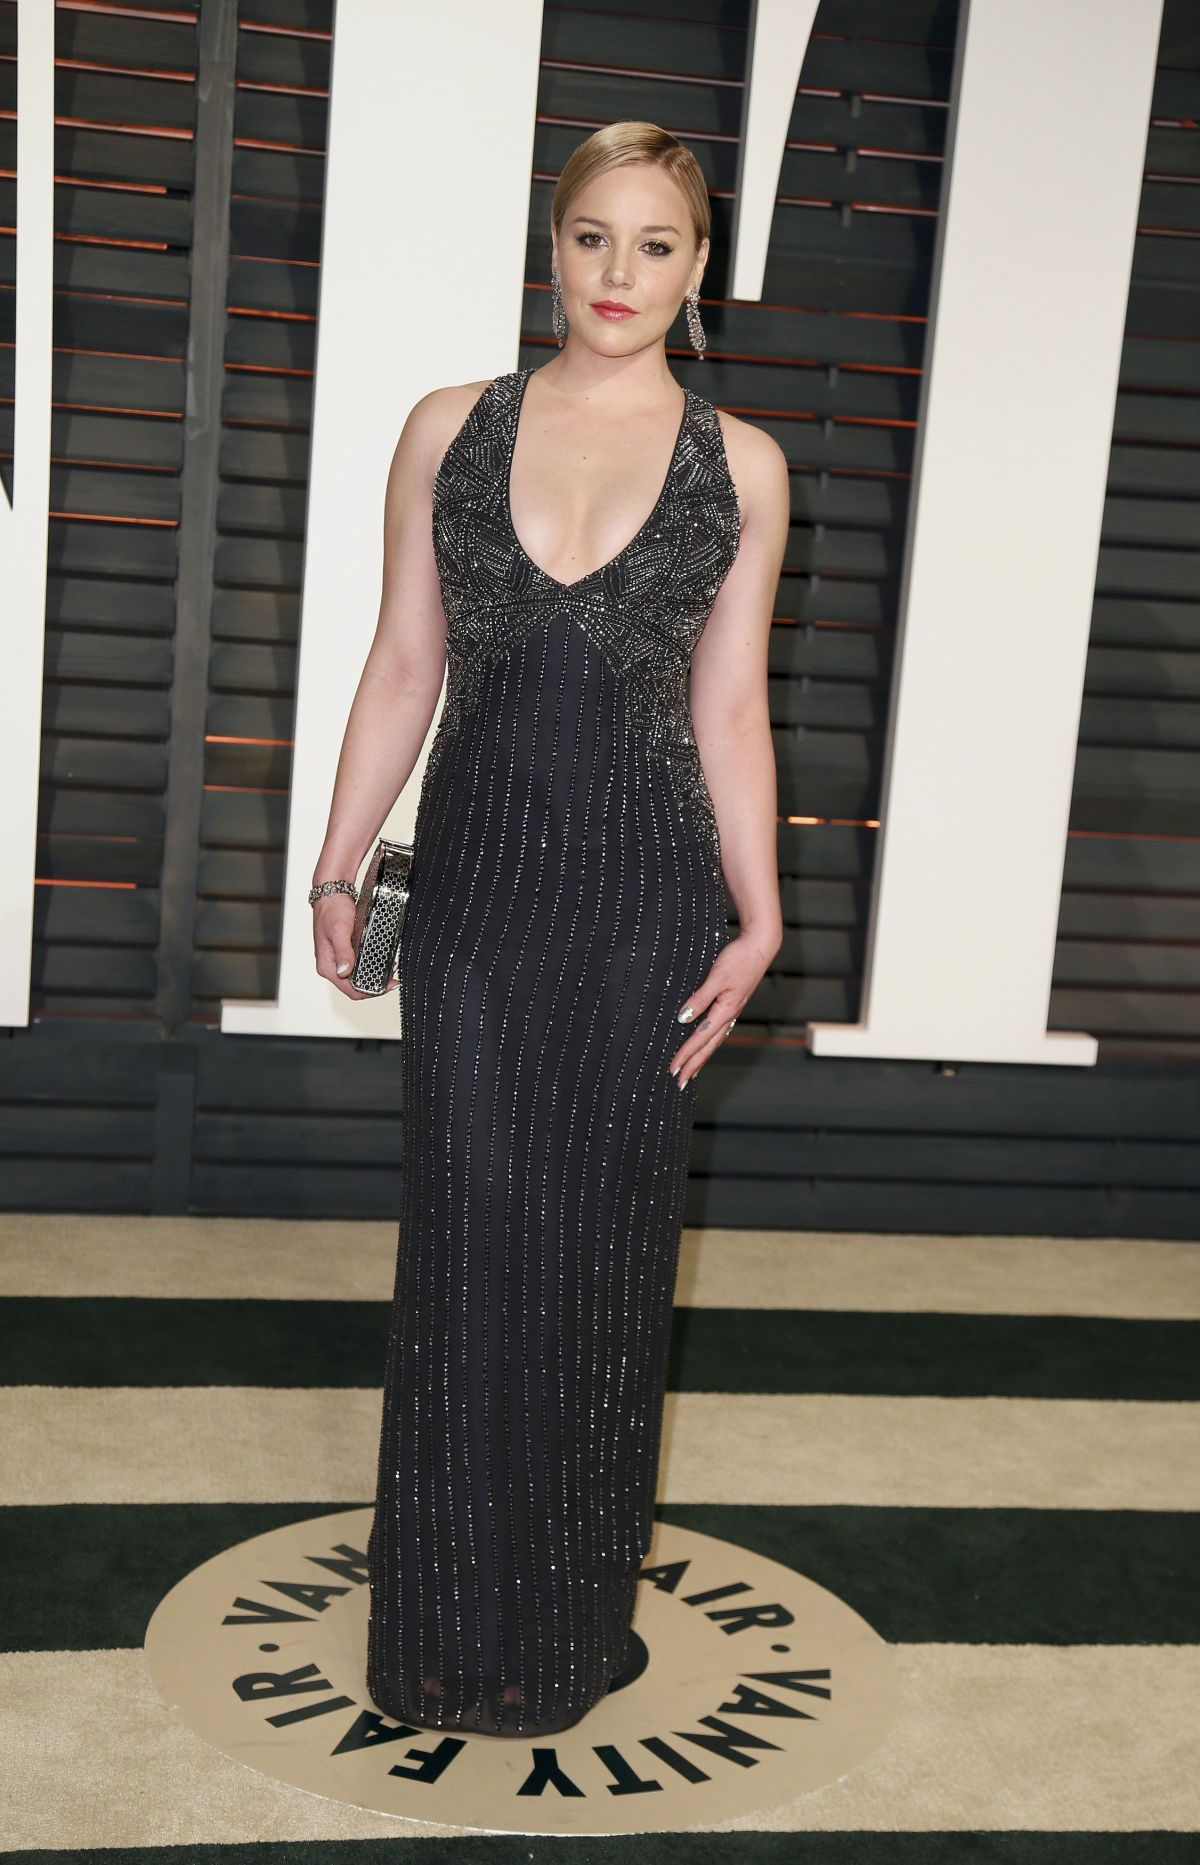 ABBIE CORNISH at Vanity Fair Oscar Party in Hollywood Abbie Cornish